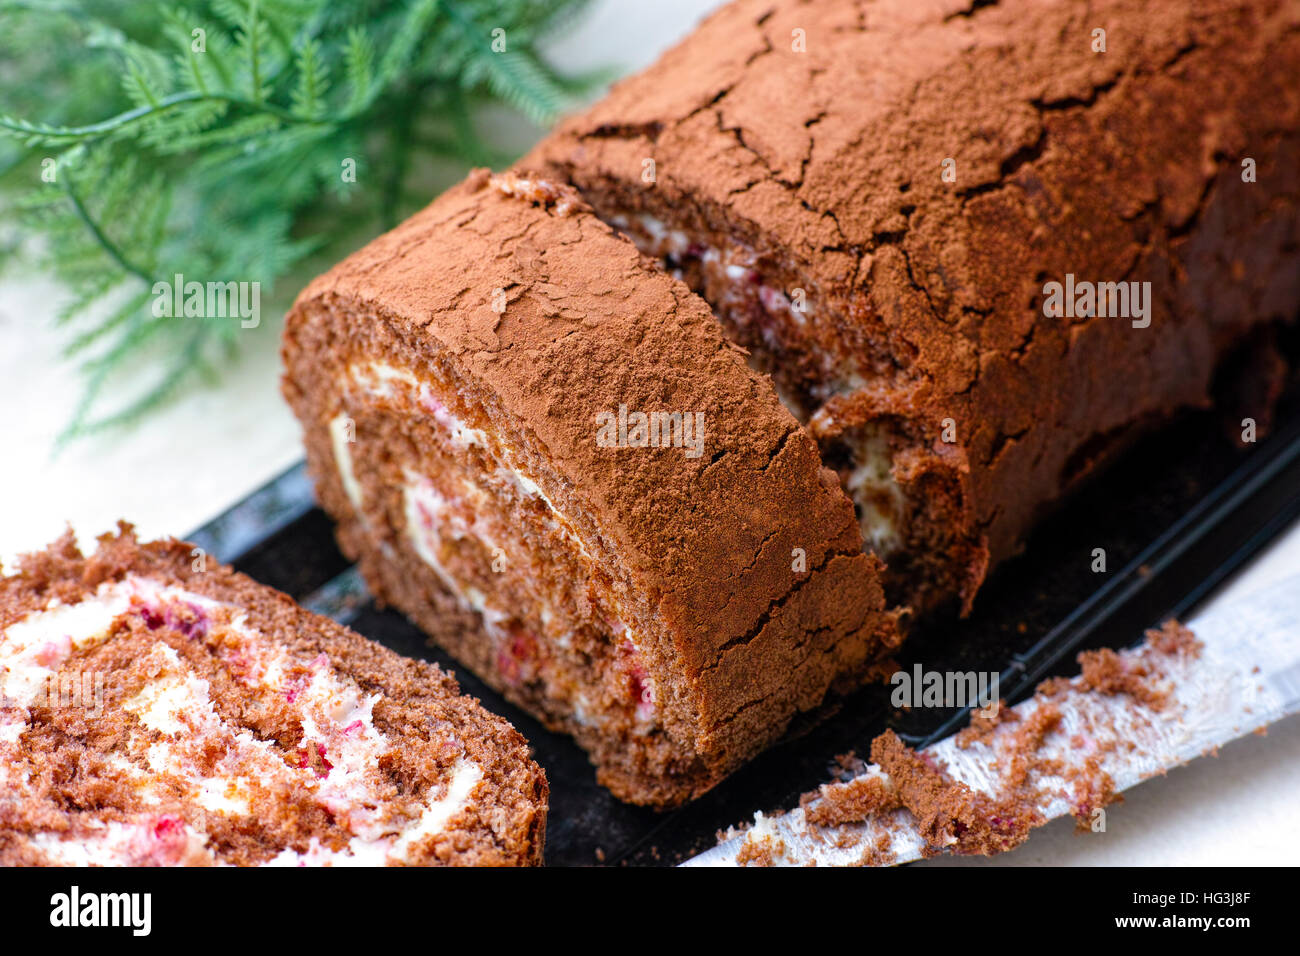 Slices of tasty chocolate sponge cake roll with cream. - Stock Image